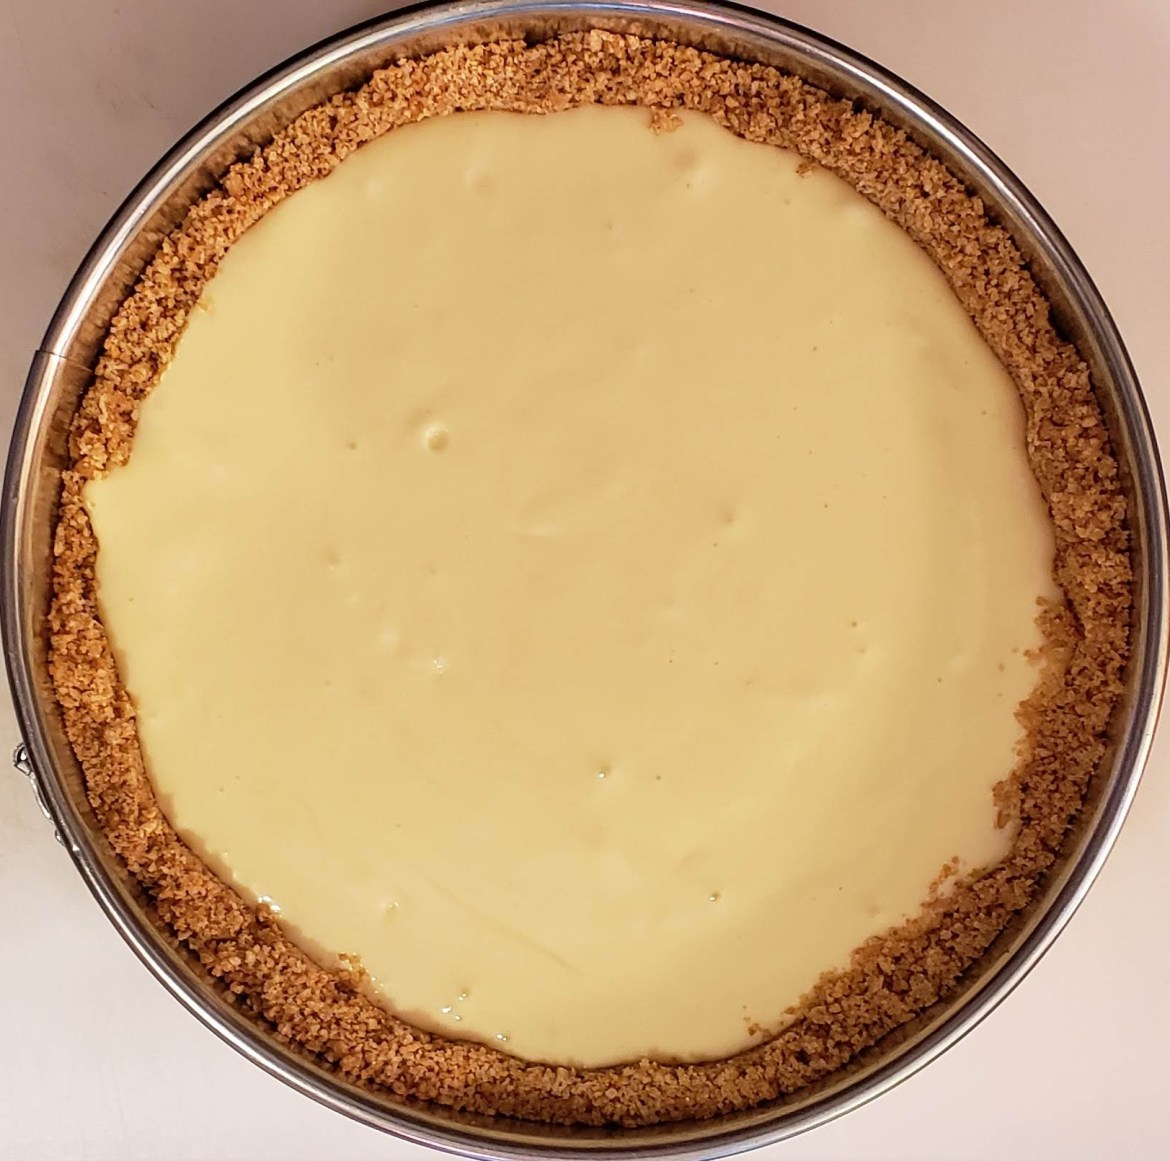 thick crust cheesecake